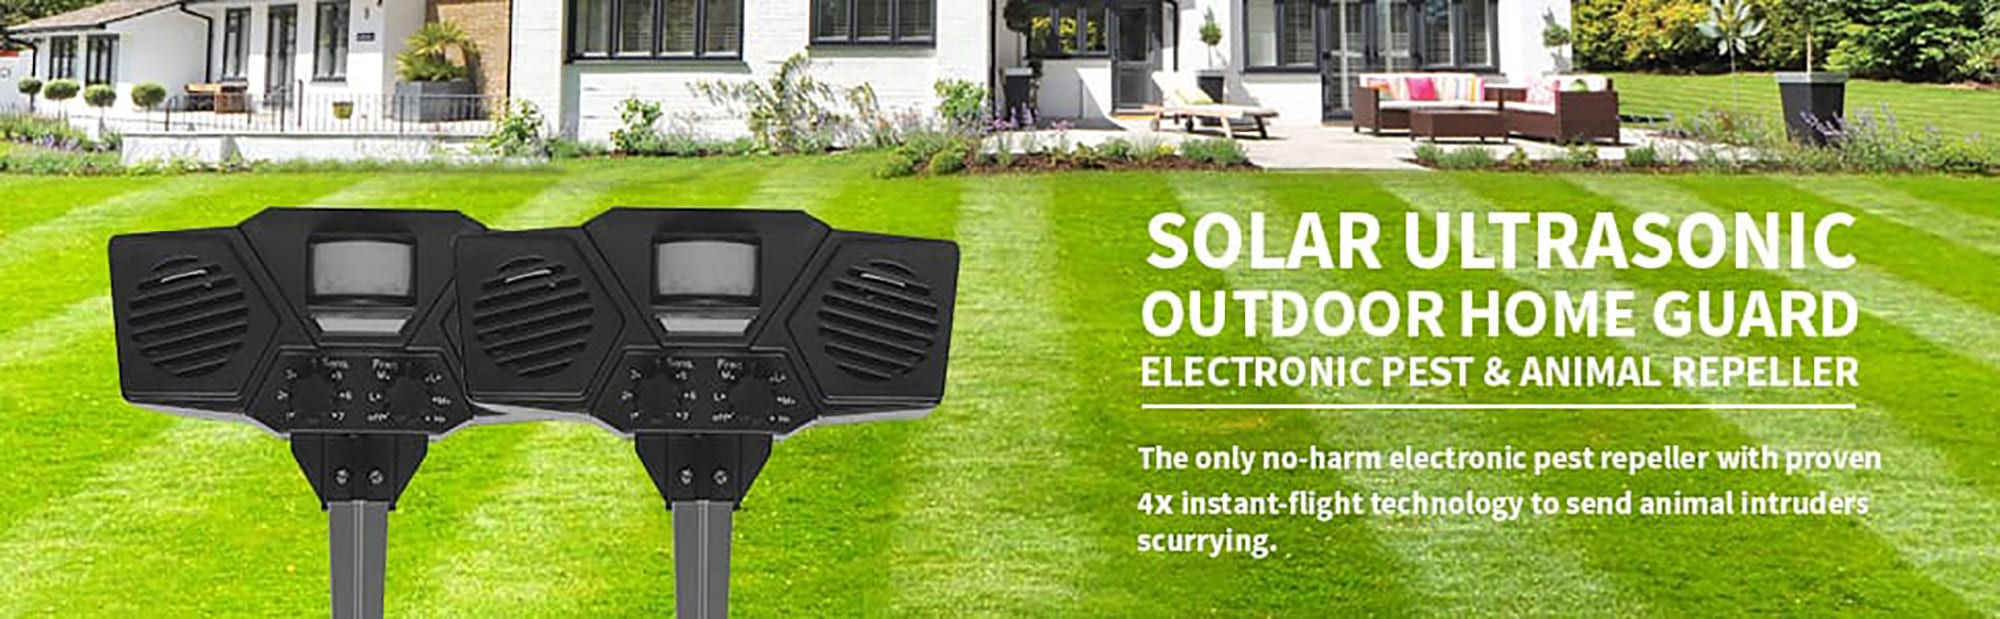 Solar Ultrasonic Outdoor Home Guard Electronic Pest and Animal Repeller - the only no-harm electronic pest repeller with proven 4x Instant Flight technology to send animal intruders scurrying